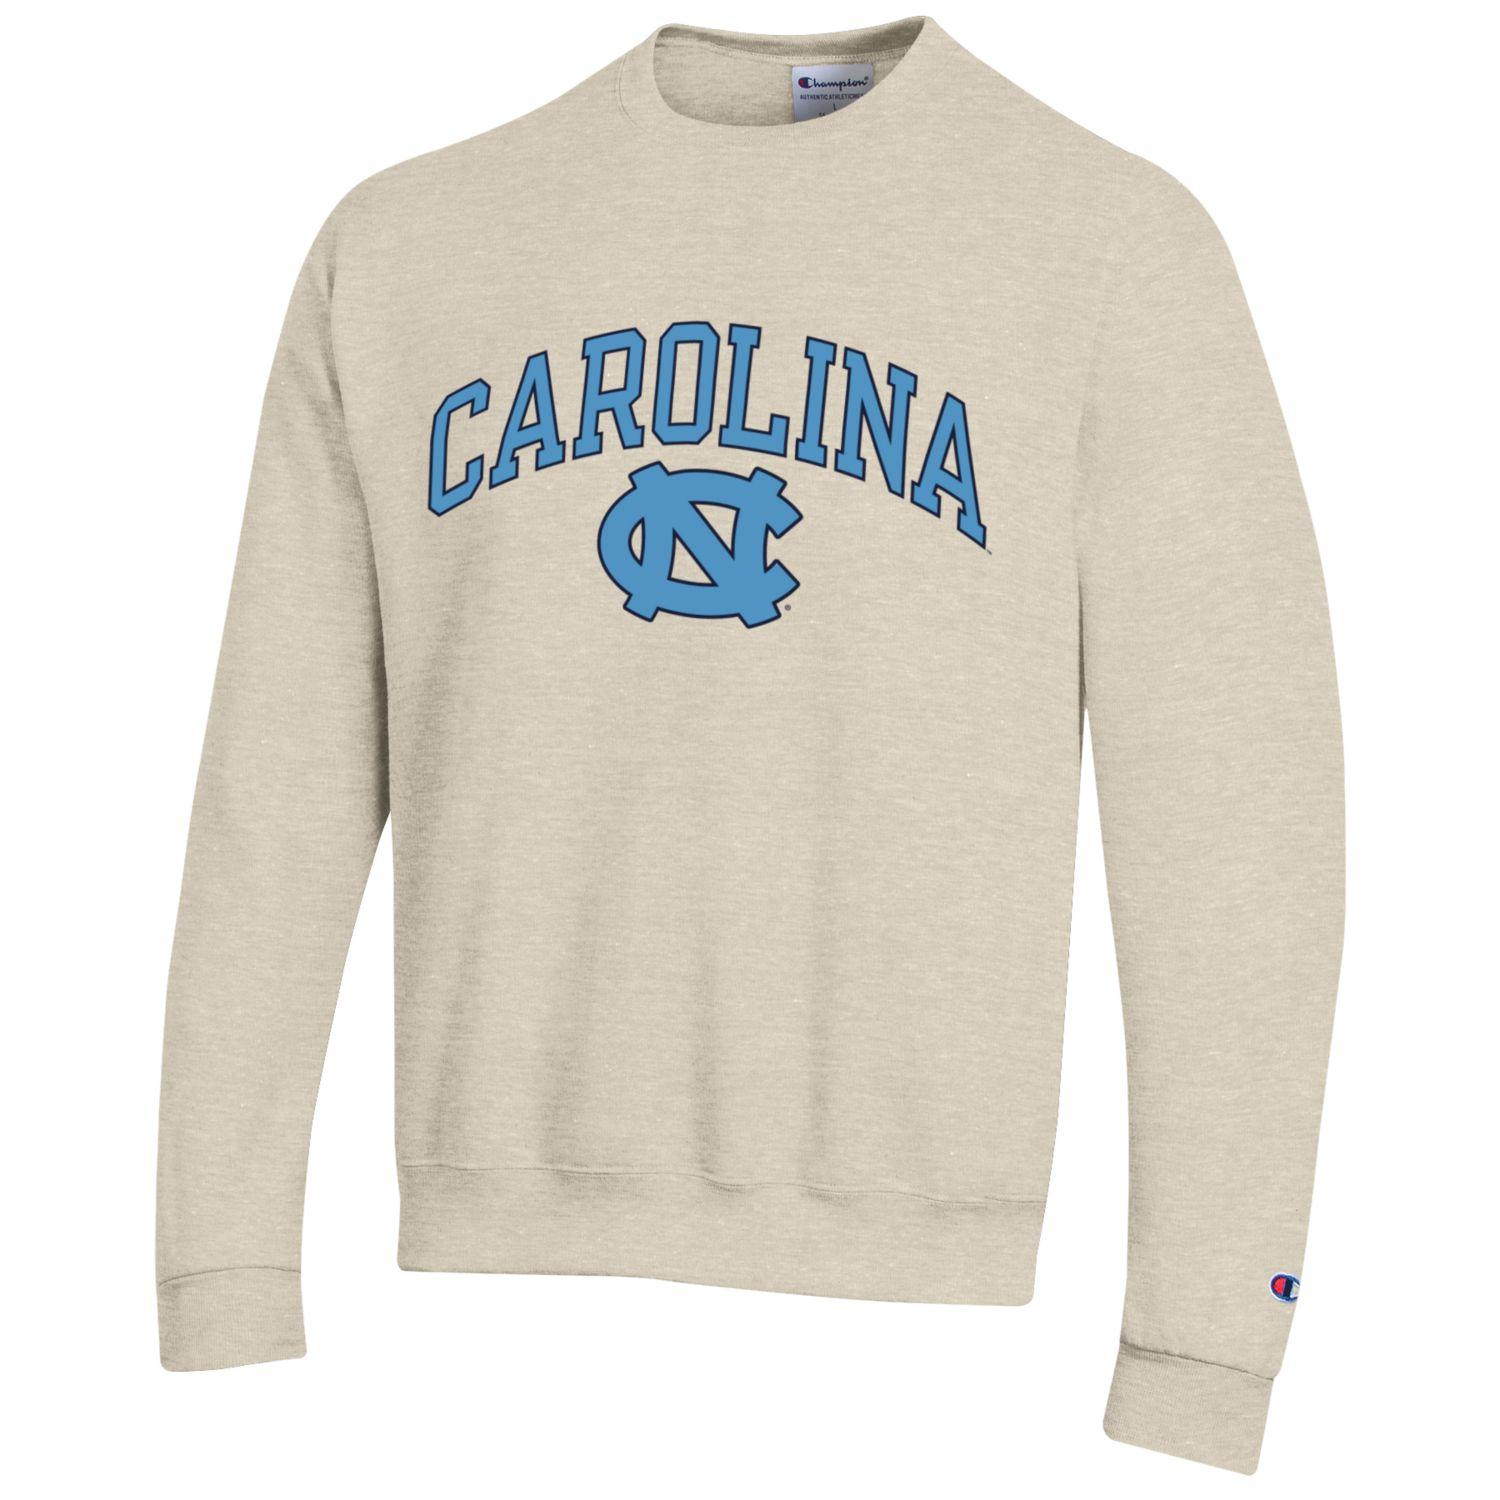 Carolina Champion Oatmeal Sweatshirt